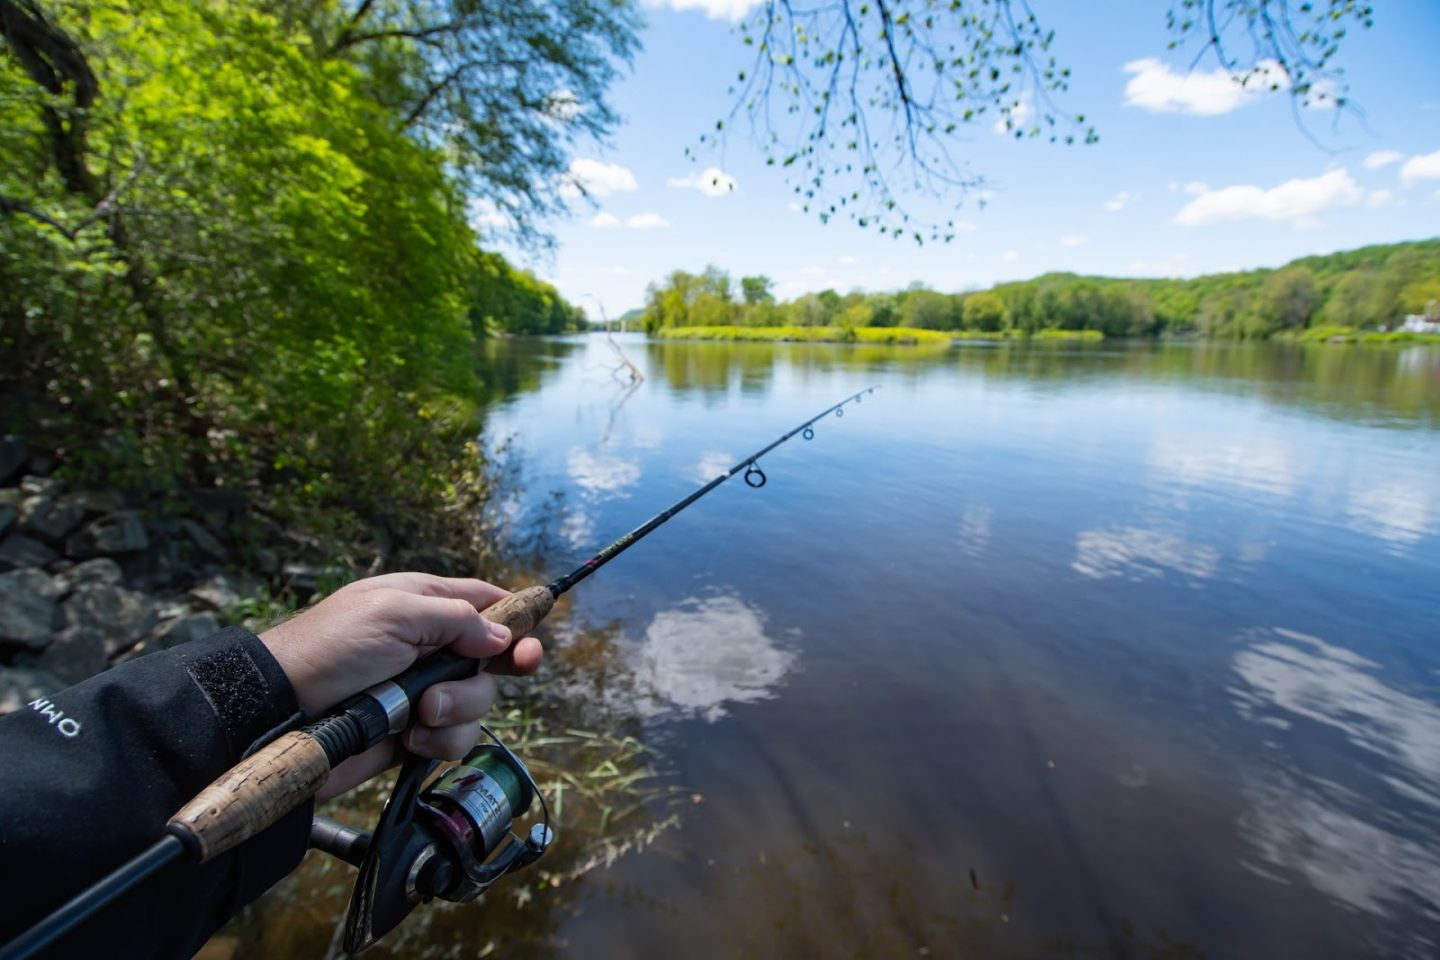 Fishing 101: How to Catch Your First Fish